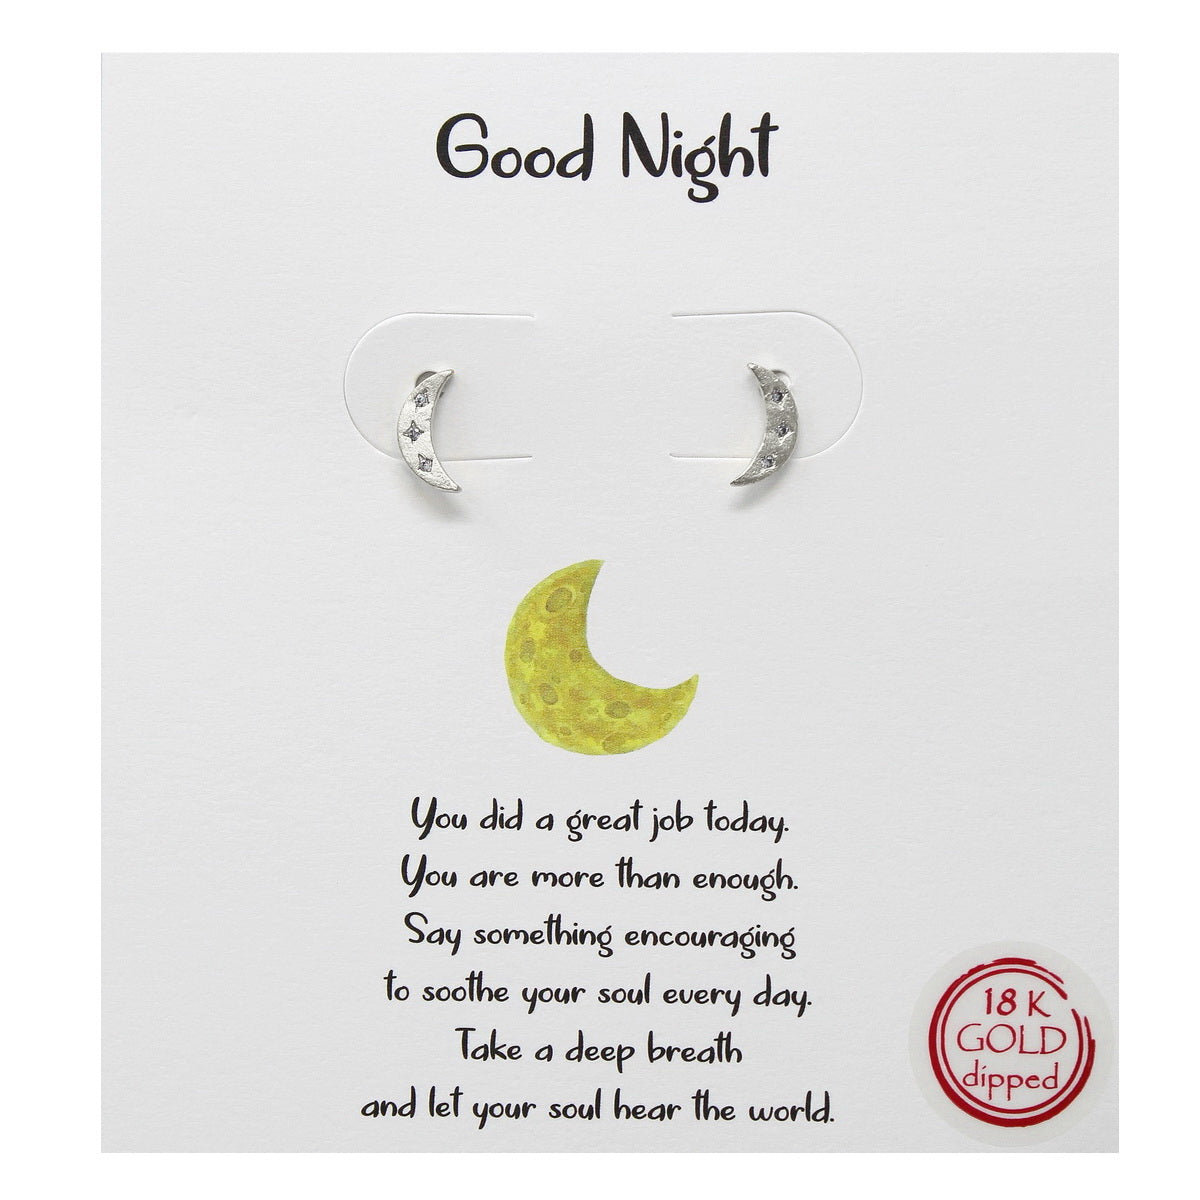 Tell Your Story: Good Night Crescent Moon Stud Earrings